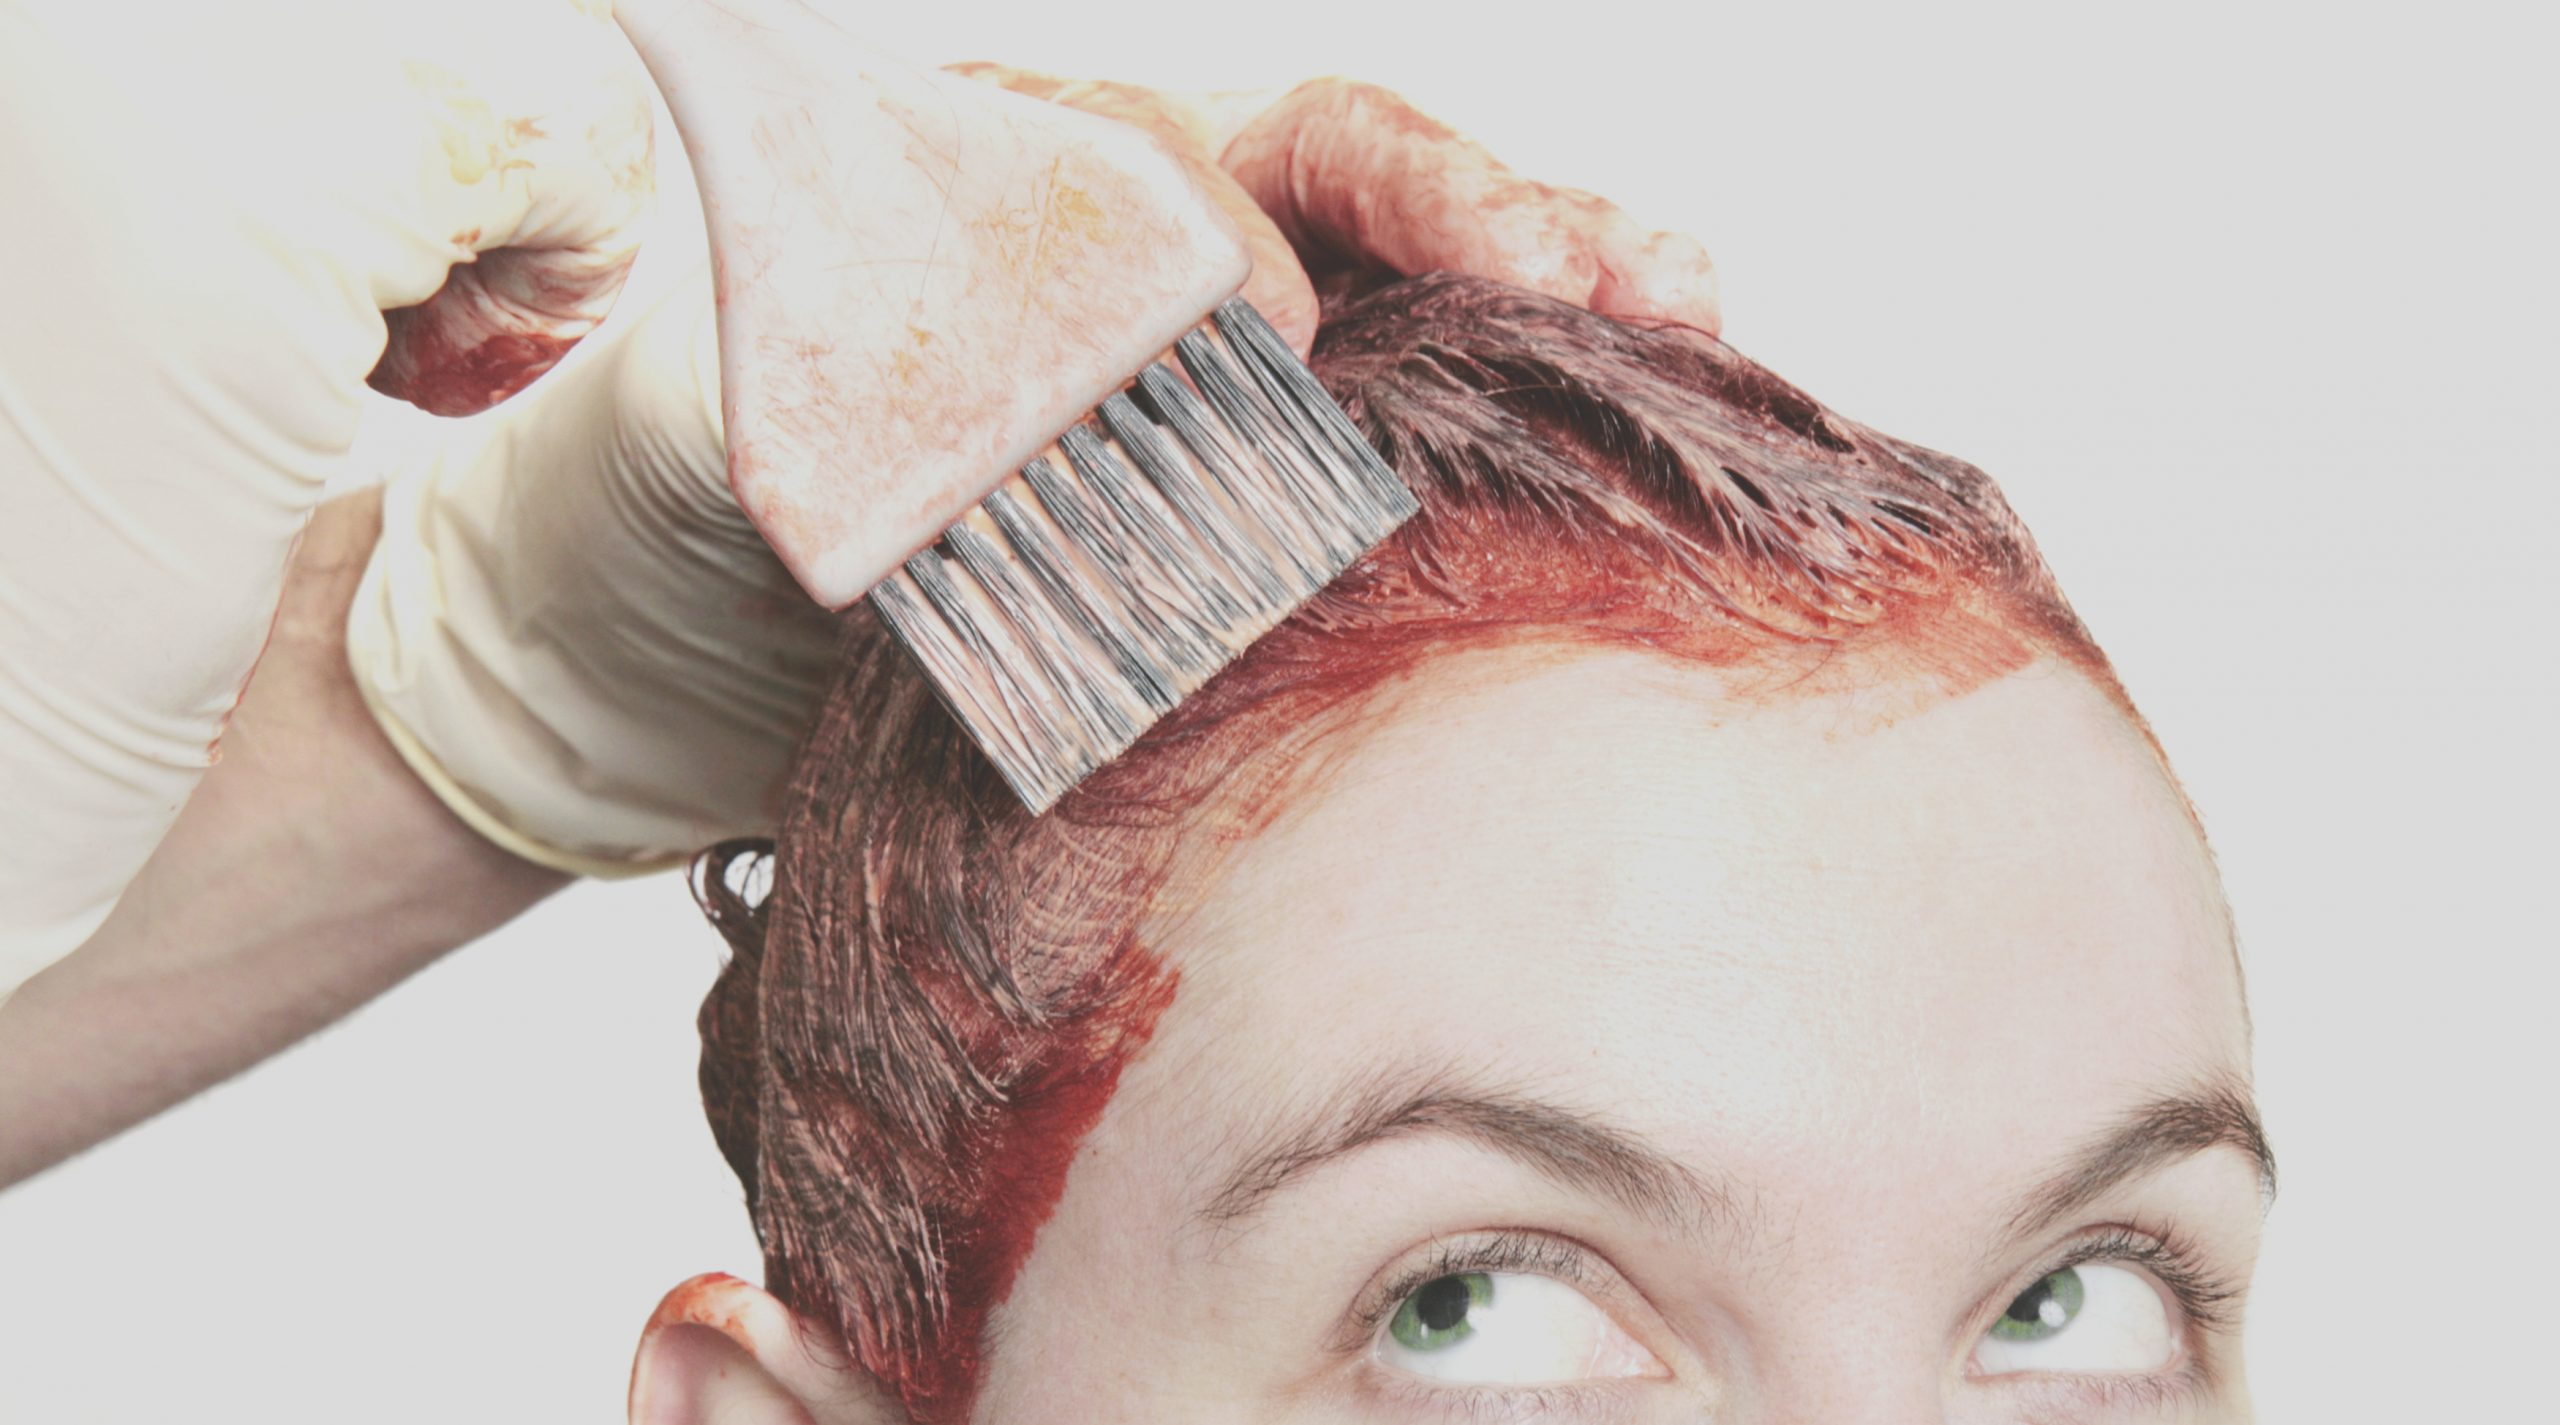 use hair dye watch for red flags whether its salon or box color